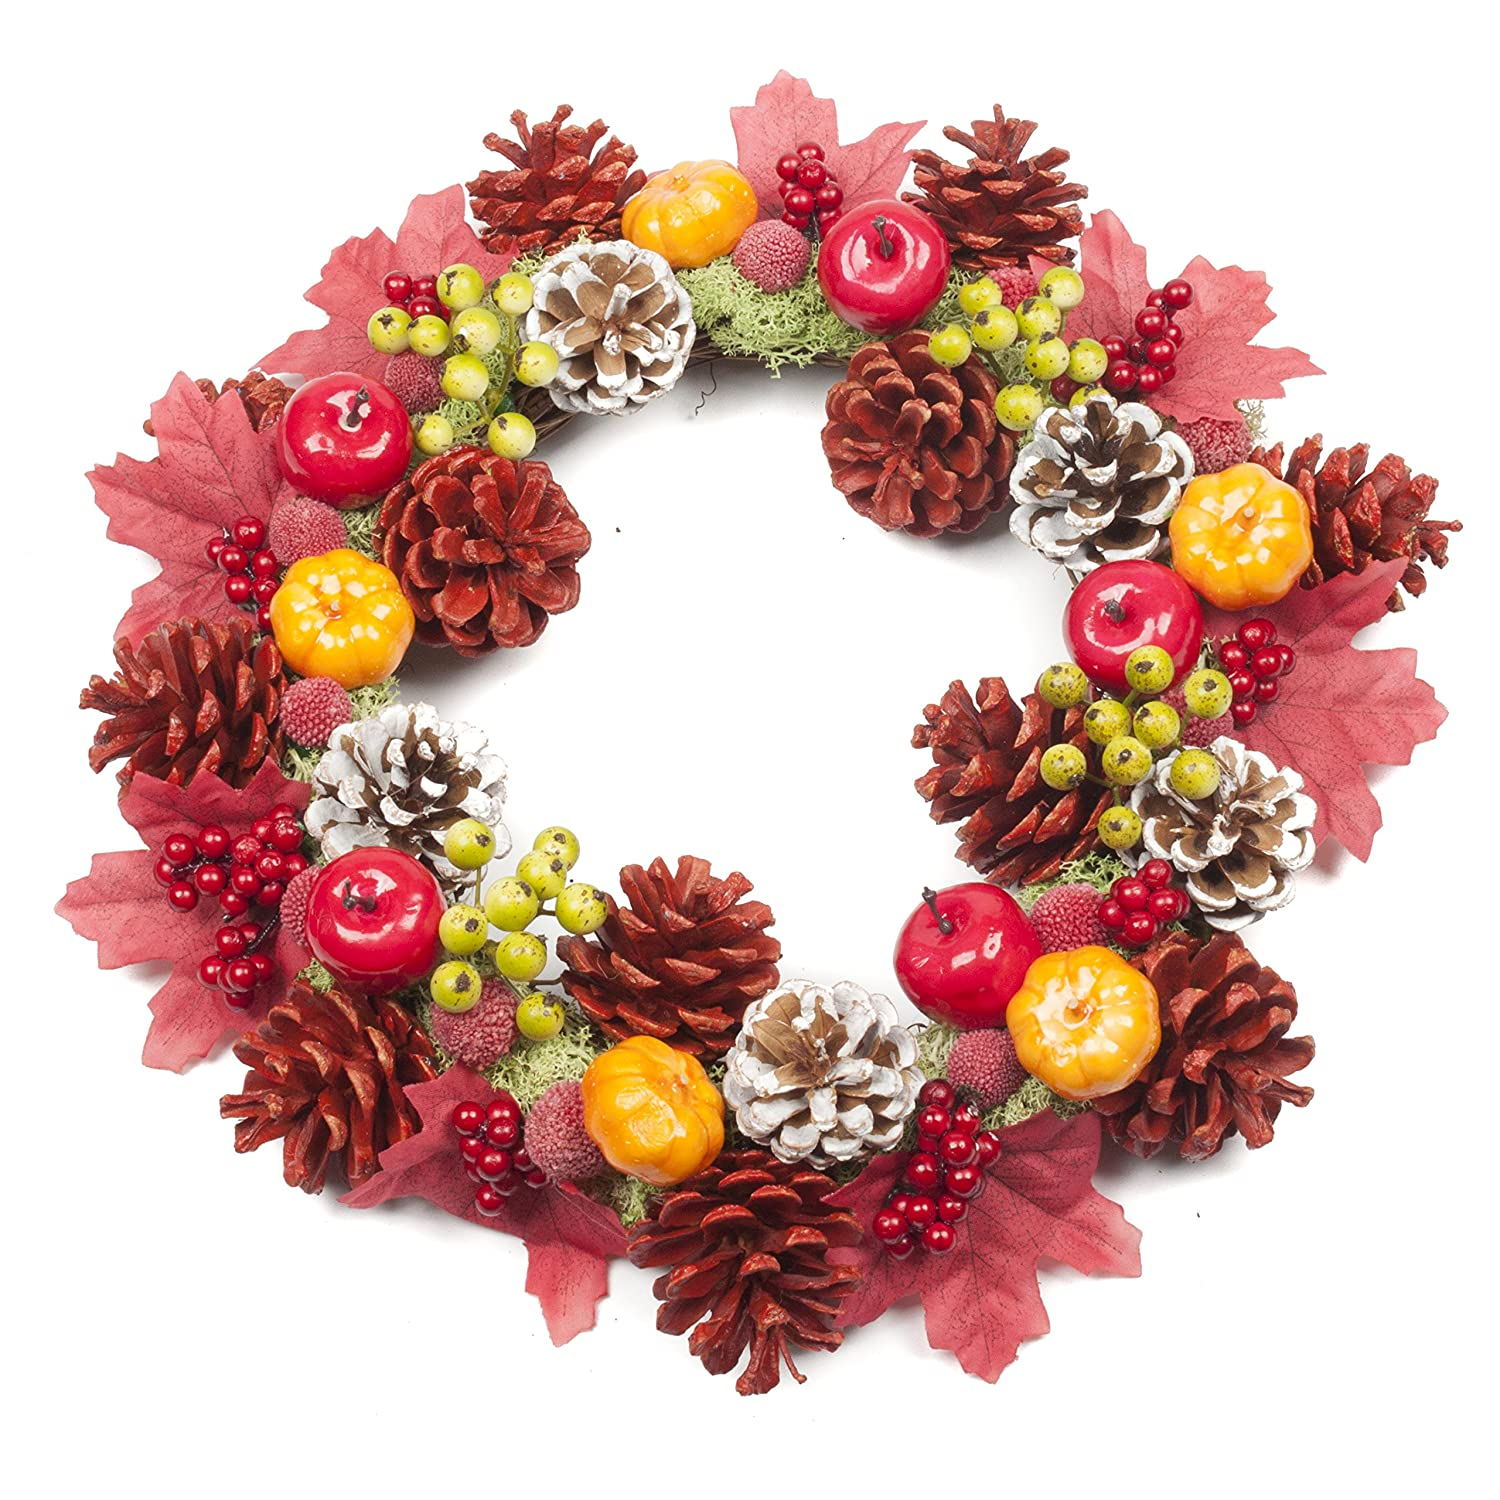 LTWHOME WWBB Artificial Berry Wreath with LED Lights, Blue Berries, Red Berries and Cherries for Front Door,Wall, Mantelpiece,Window Decoration Ltd.